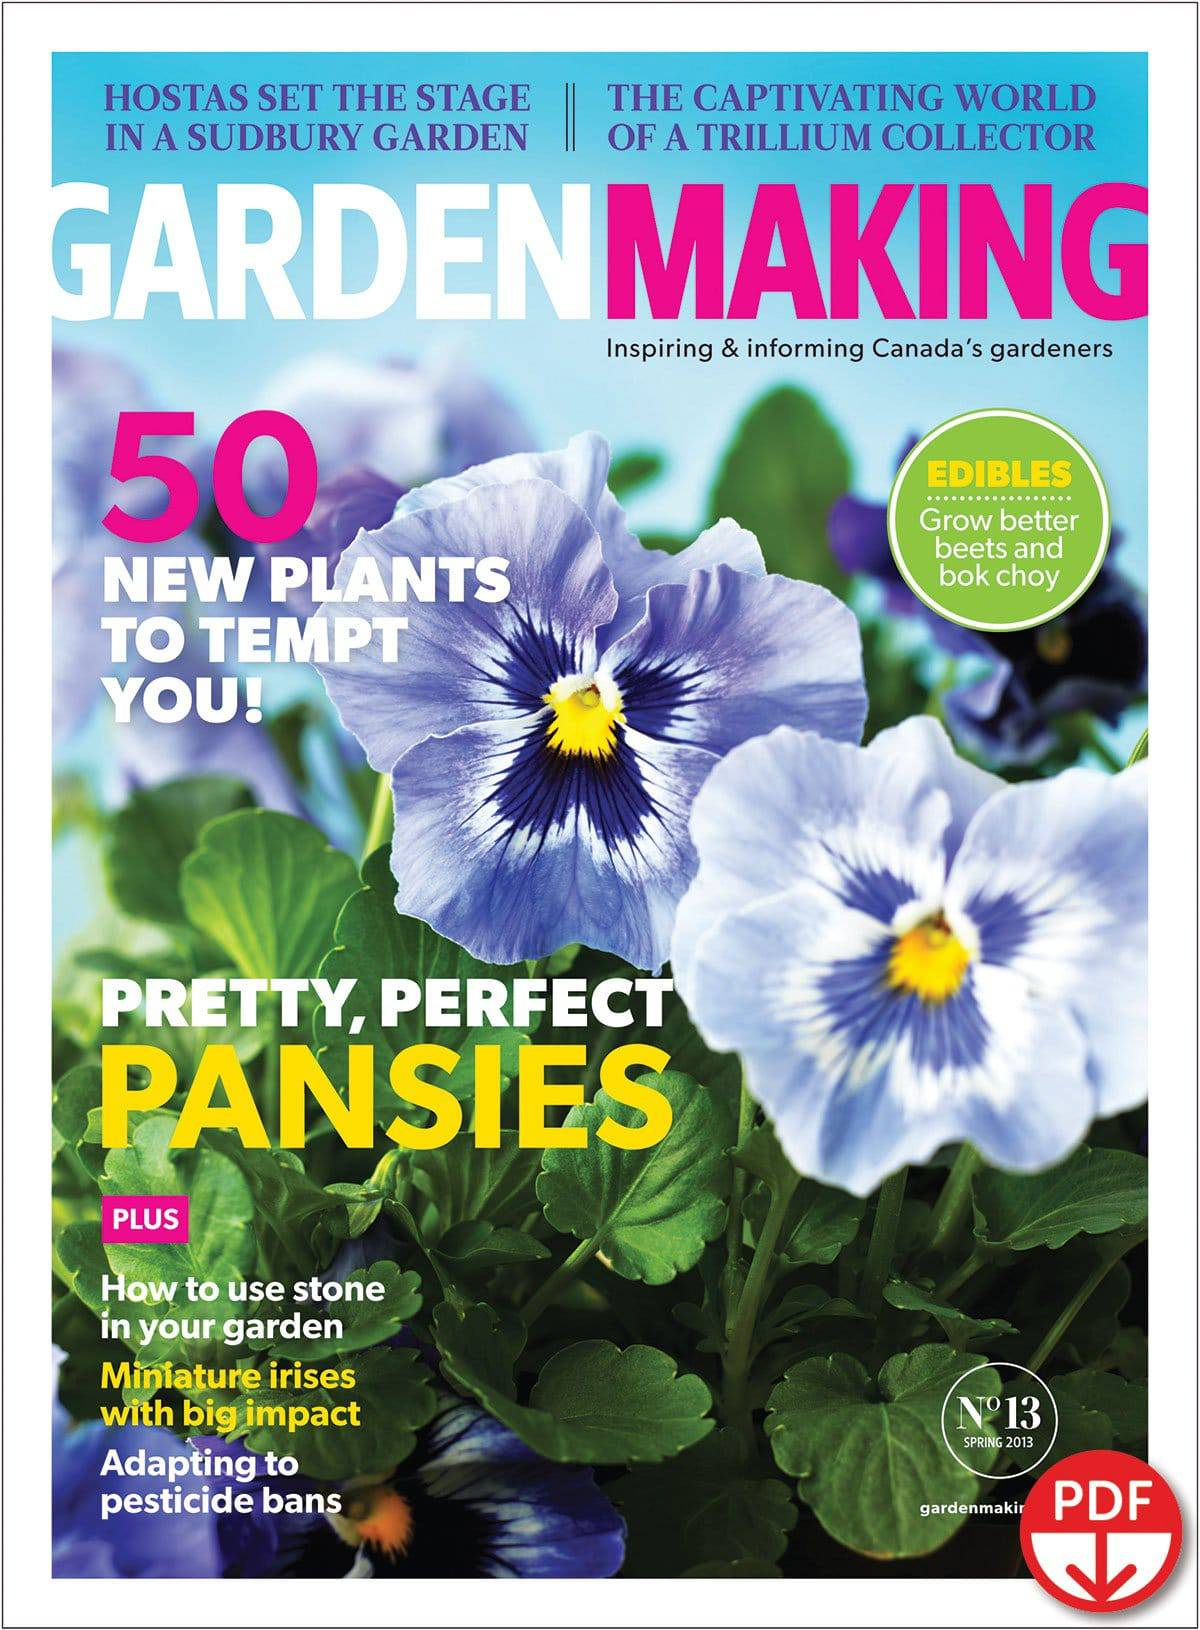 Pansies and other colourful flowers sparkle in Garden Making No. 13.